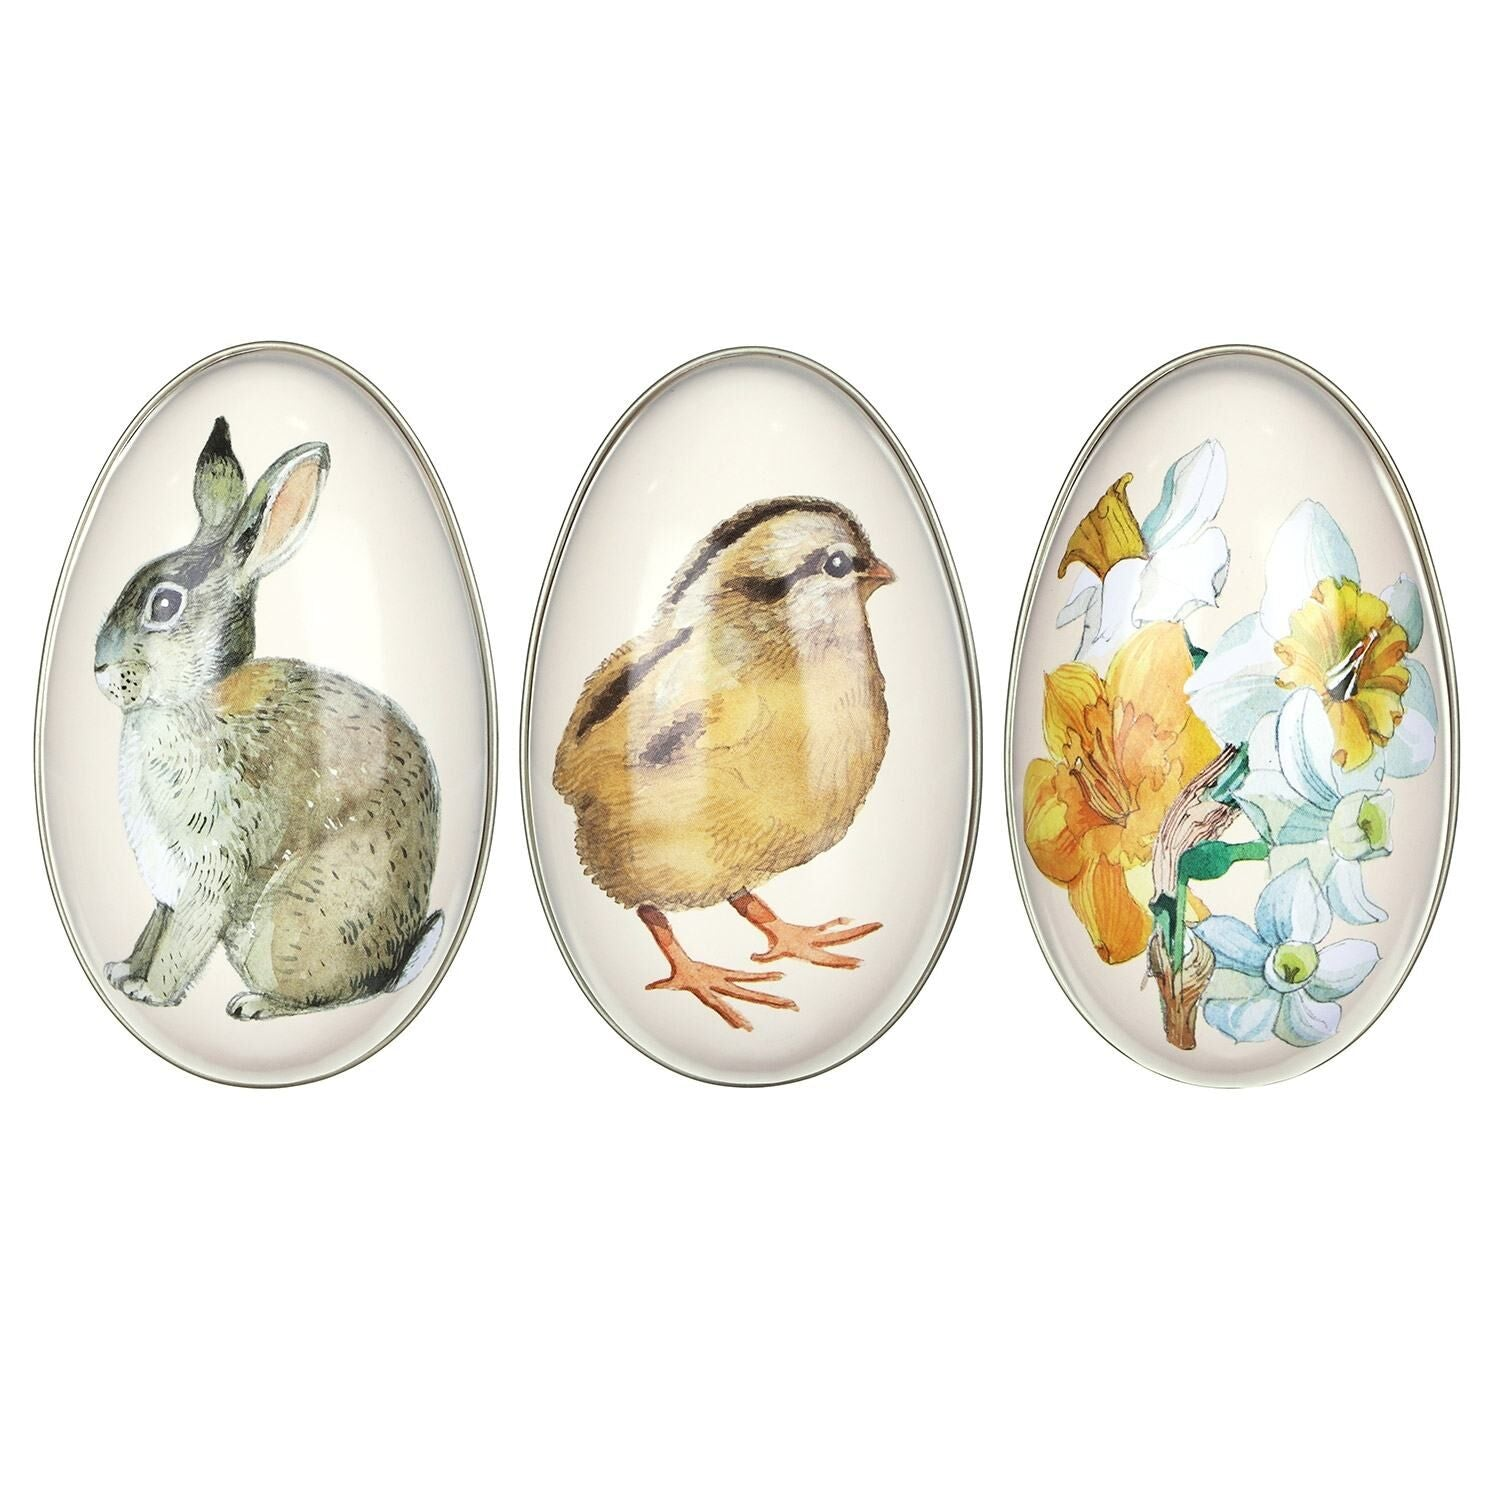 Emma Bridgewater Tin Egg - Rabbit